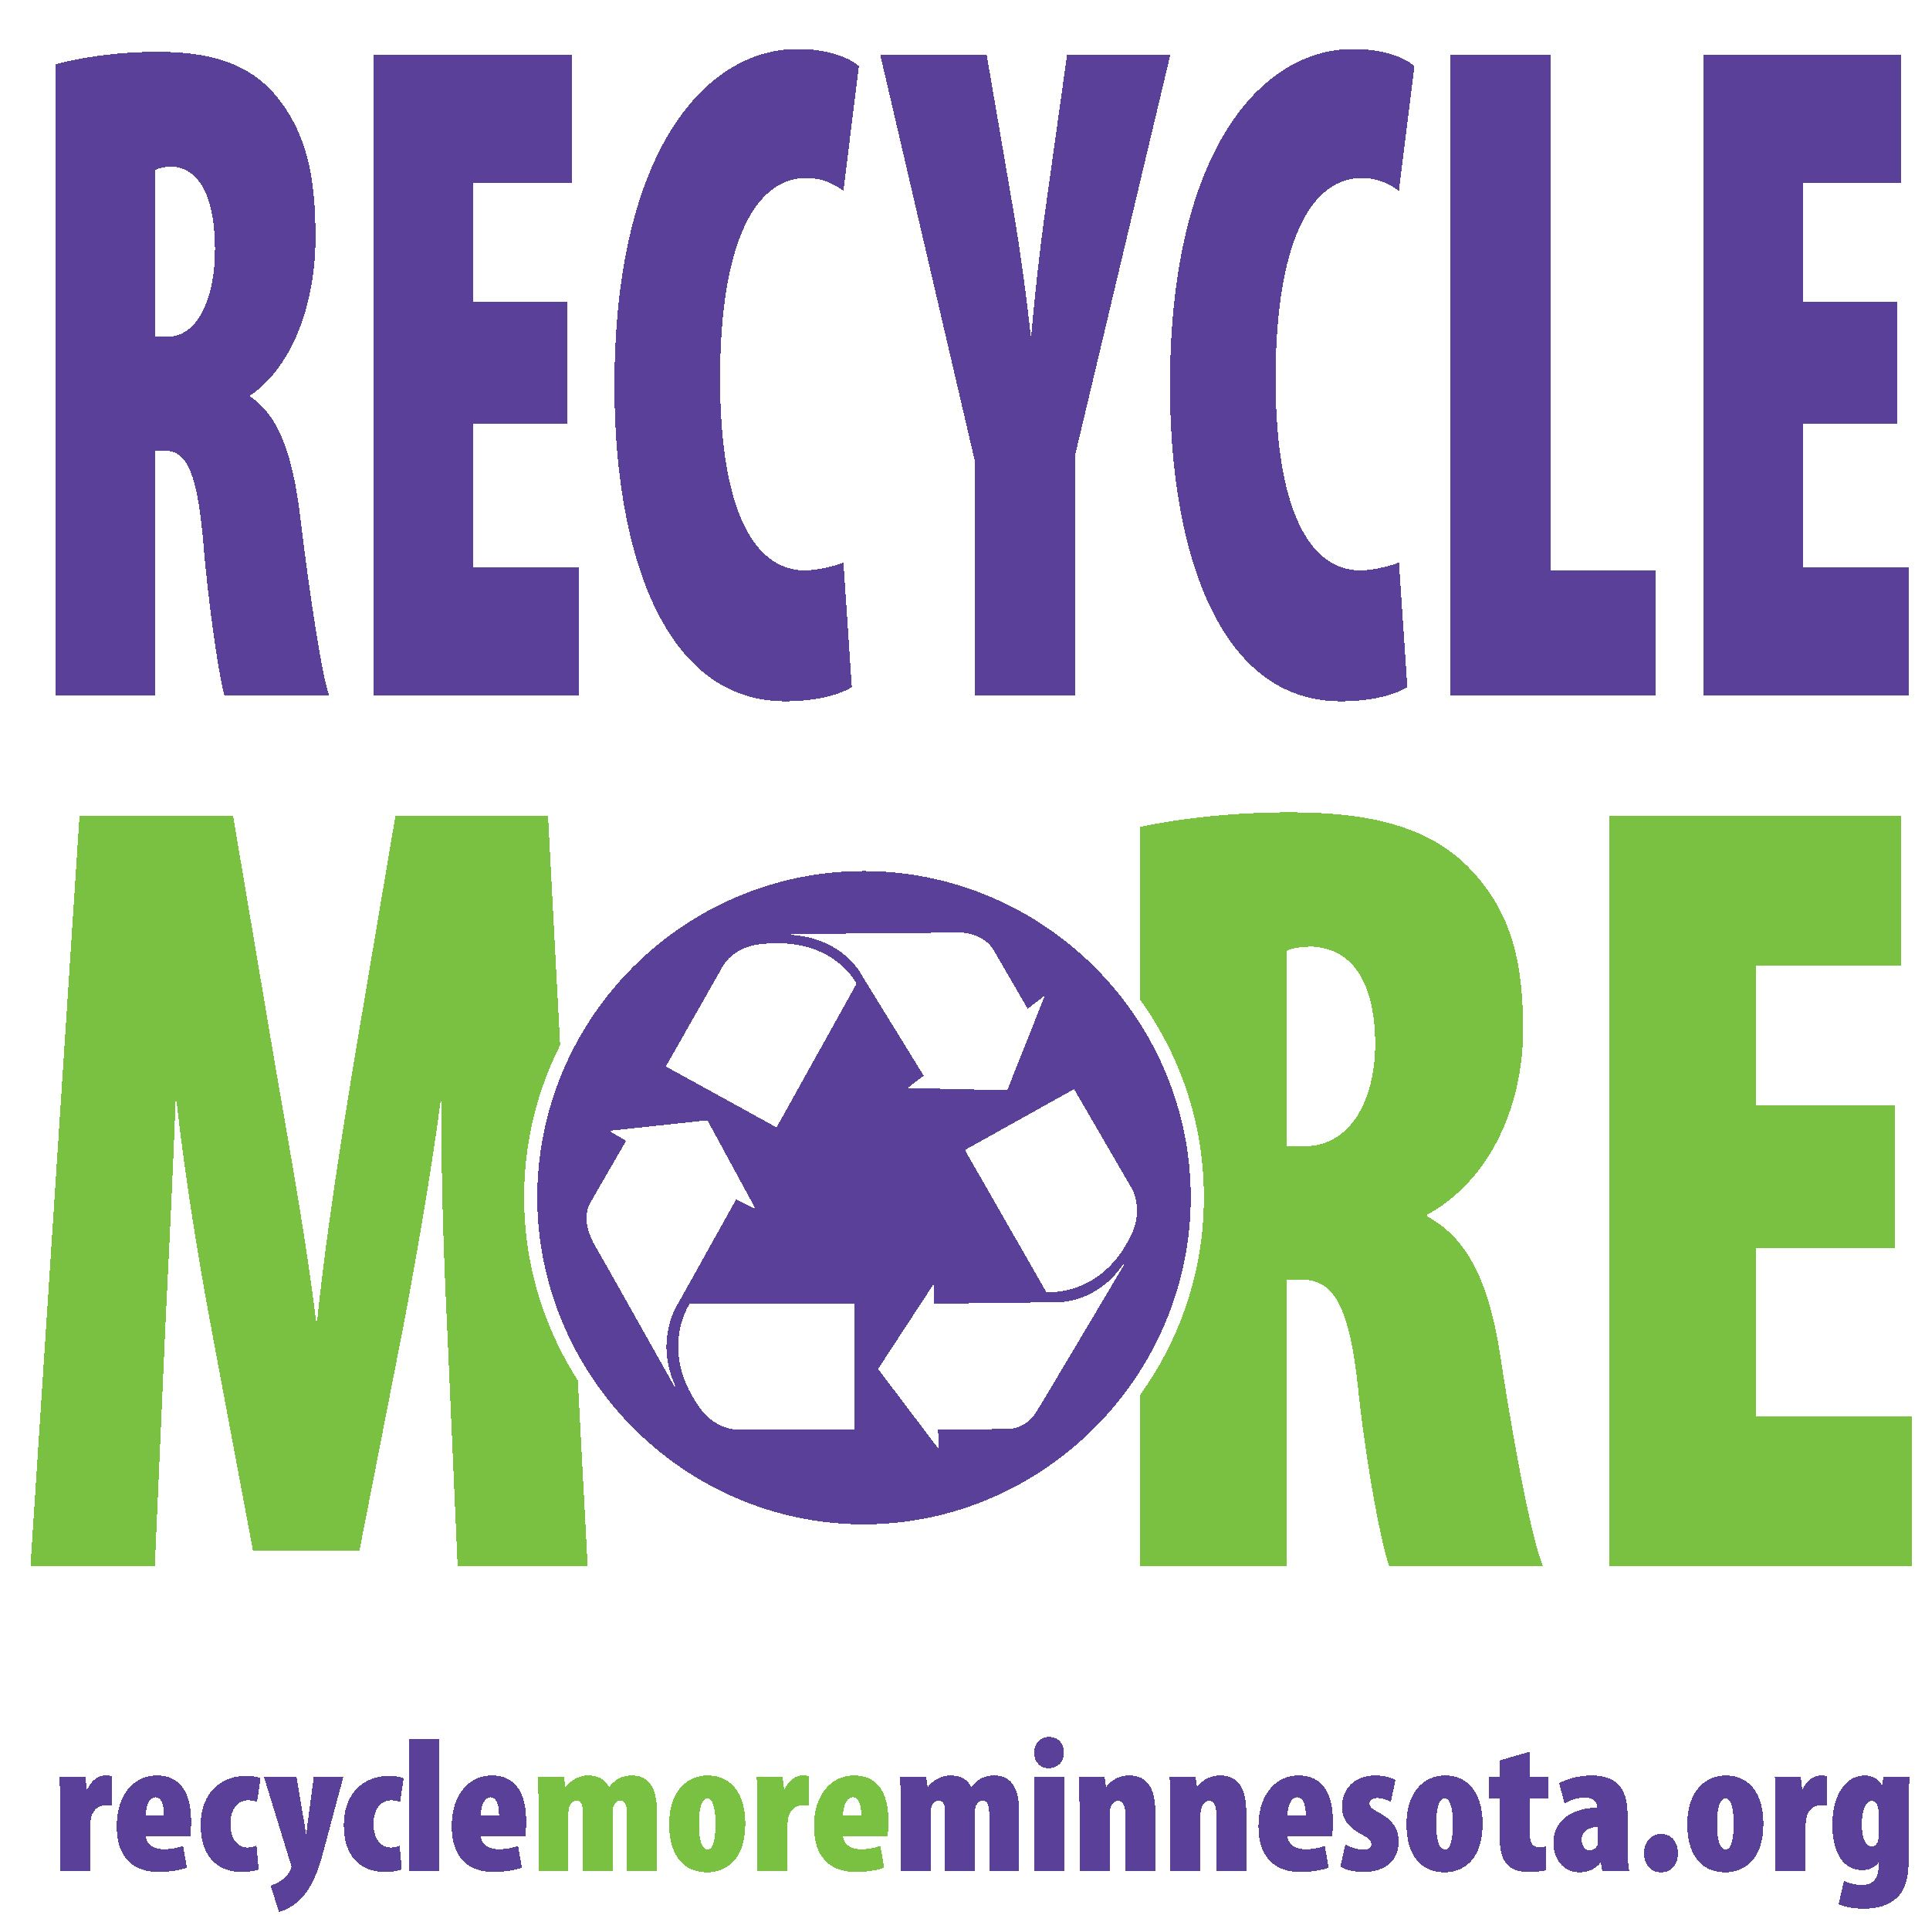 Click here to visit the Recycle More Minnesota website.